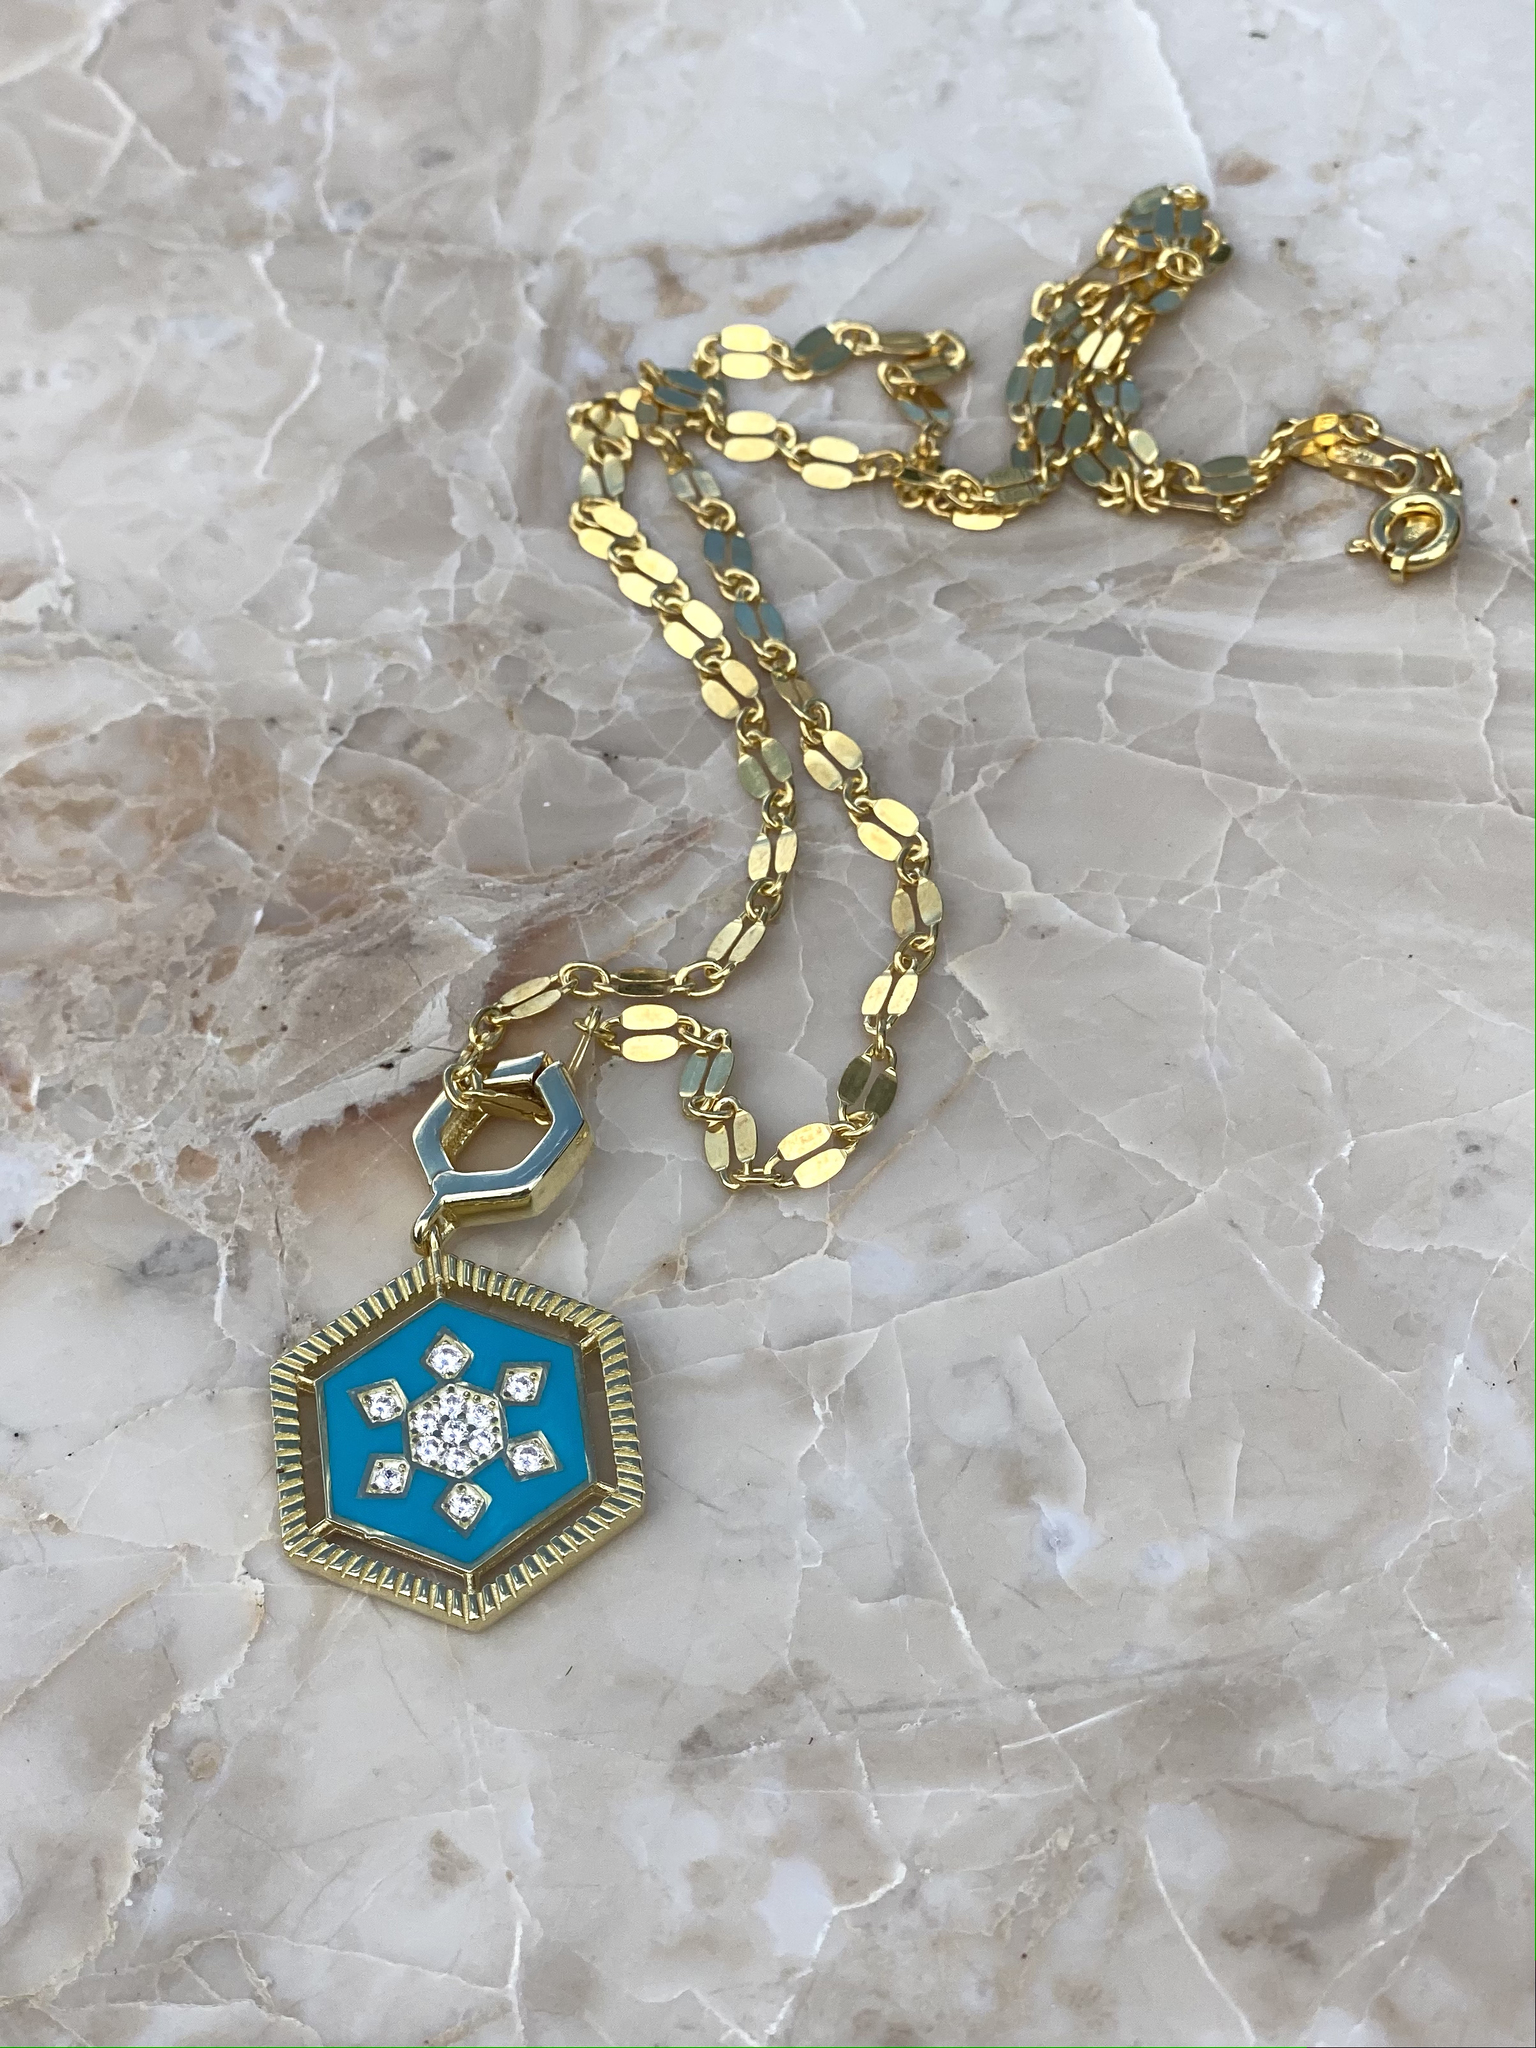 Necklace in gold plated silver with light blue enamel